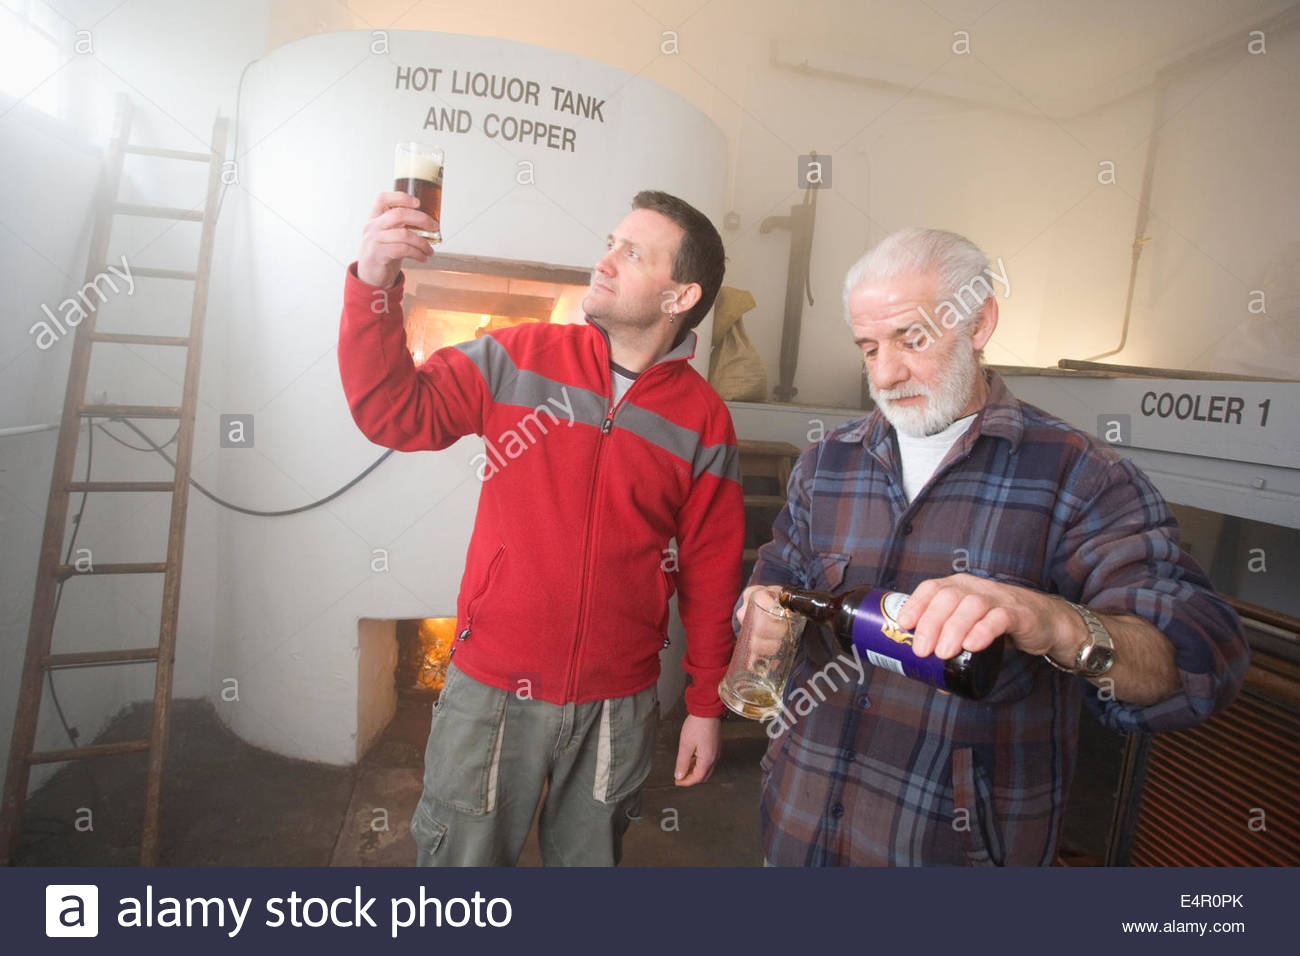 Two brewers check the quality of the finished product by the Hot Liquor Tank at the original brewhouse at Traquair - Stock Image